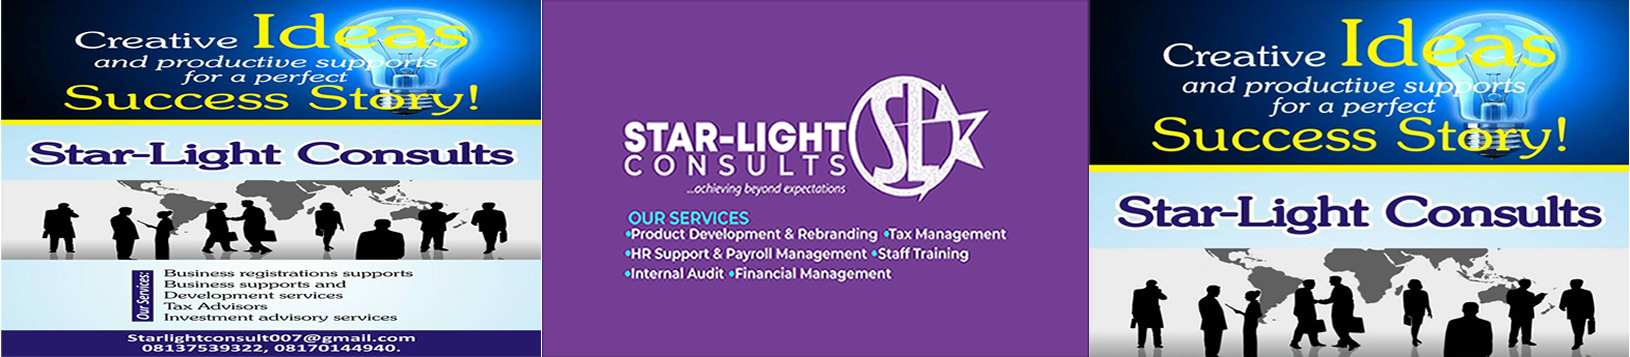 STAR LIGHT CONSULTS